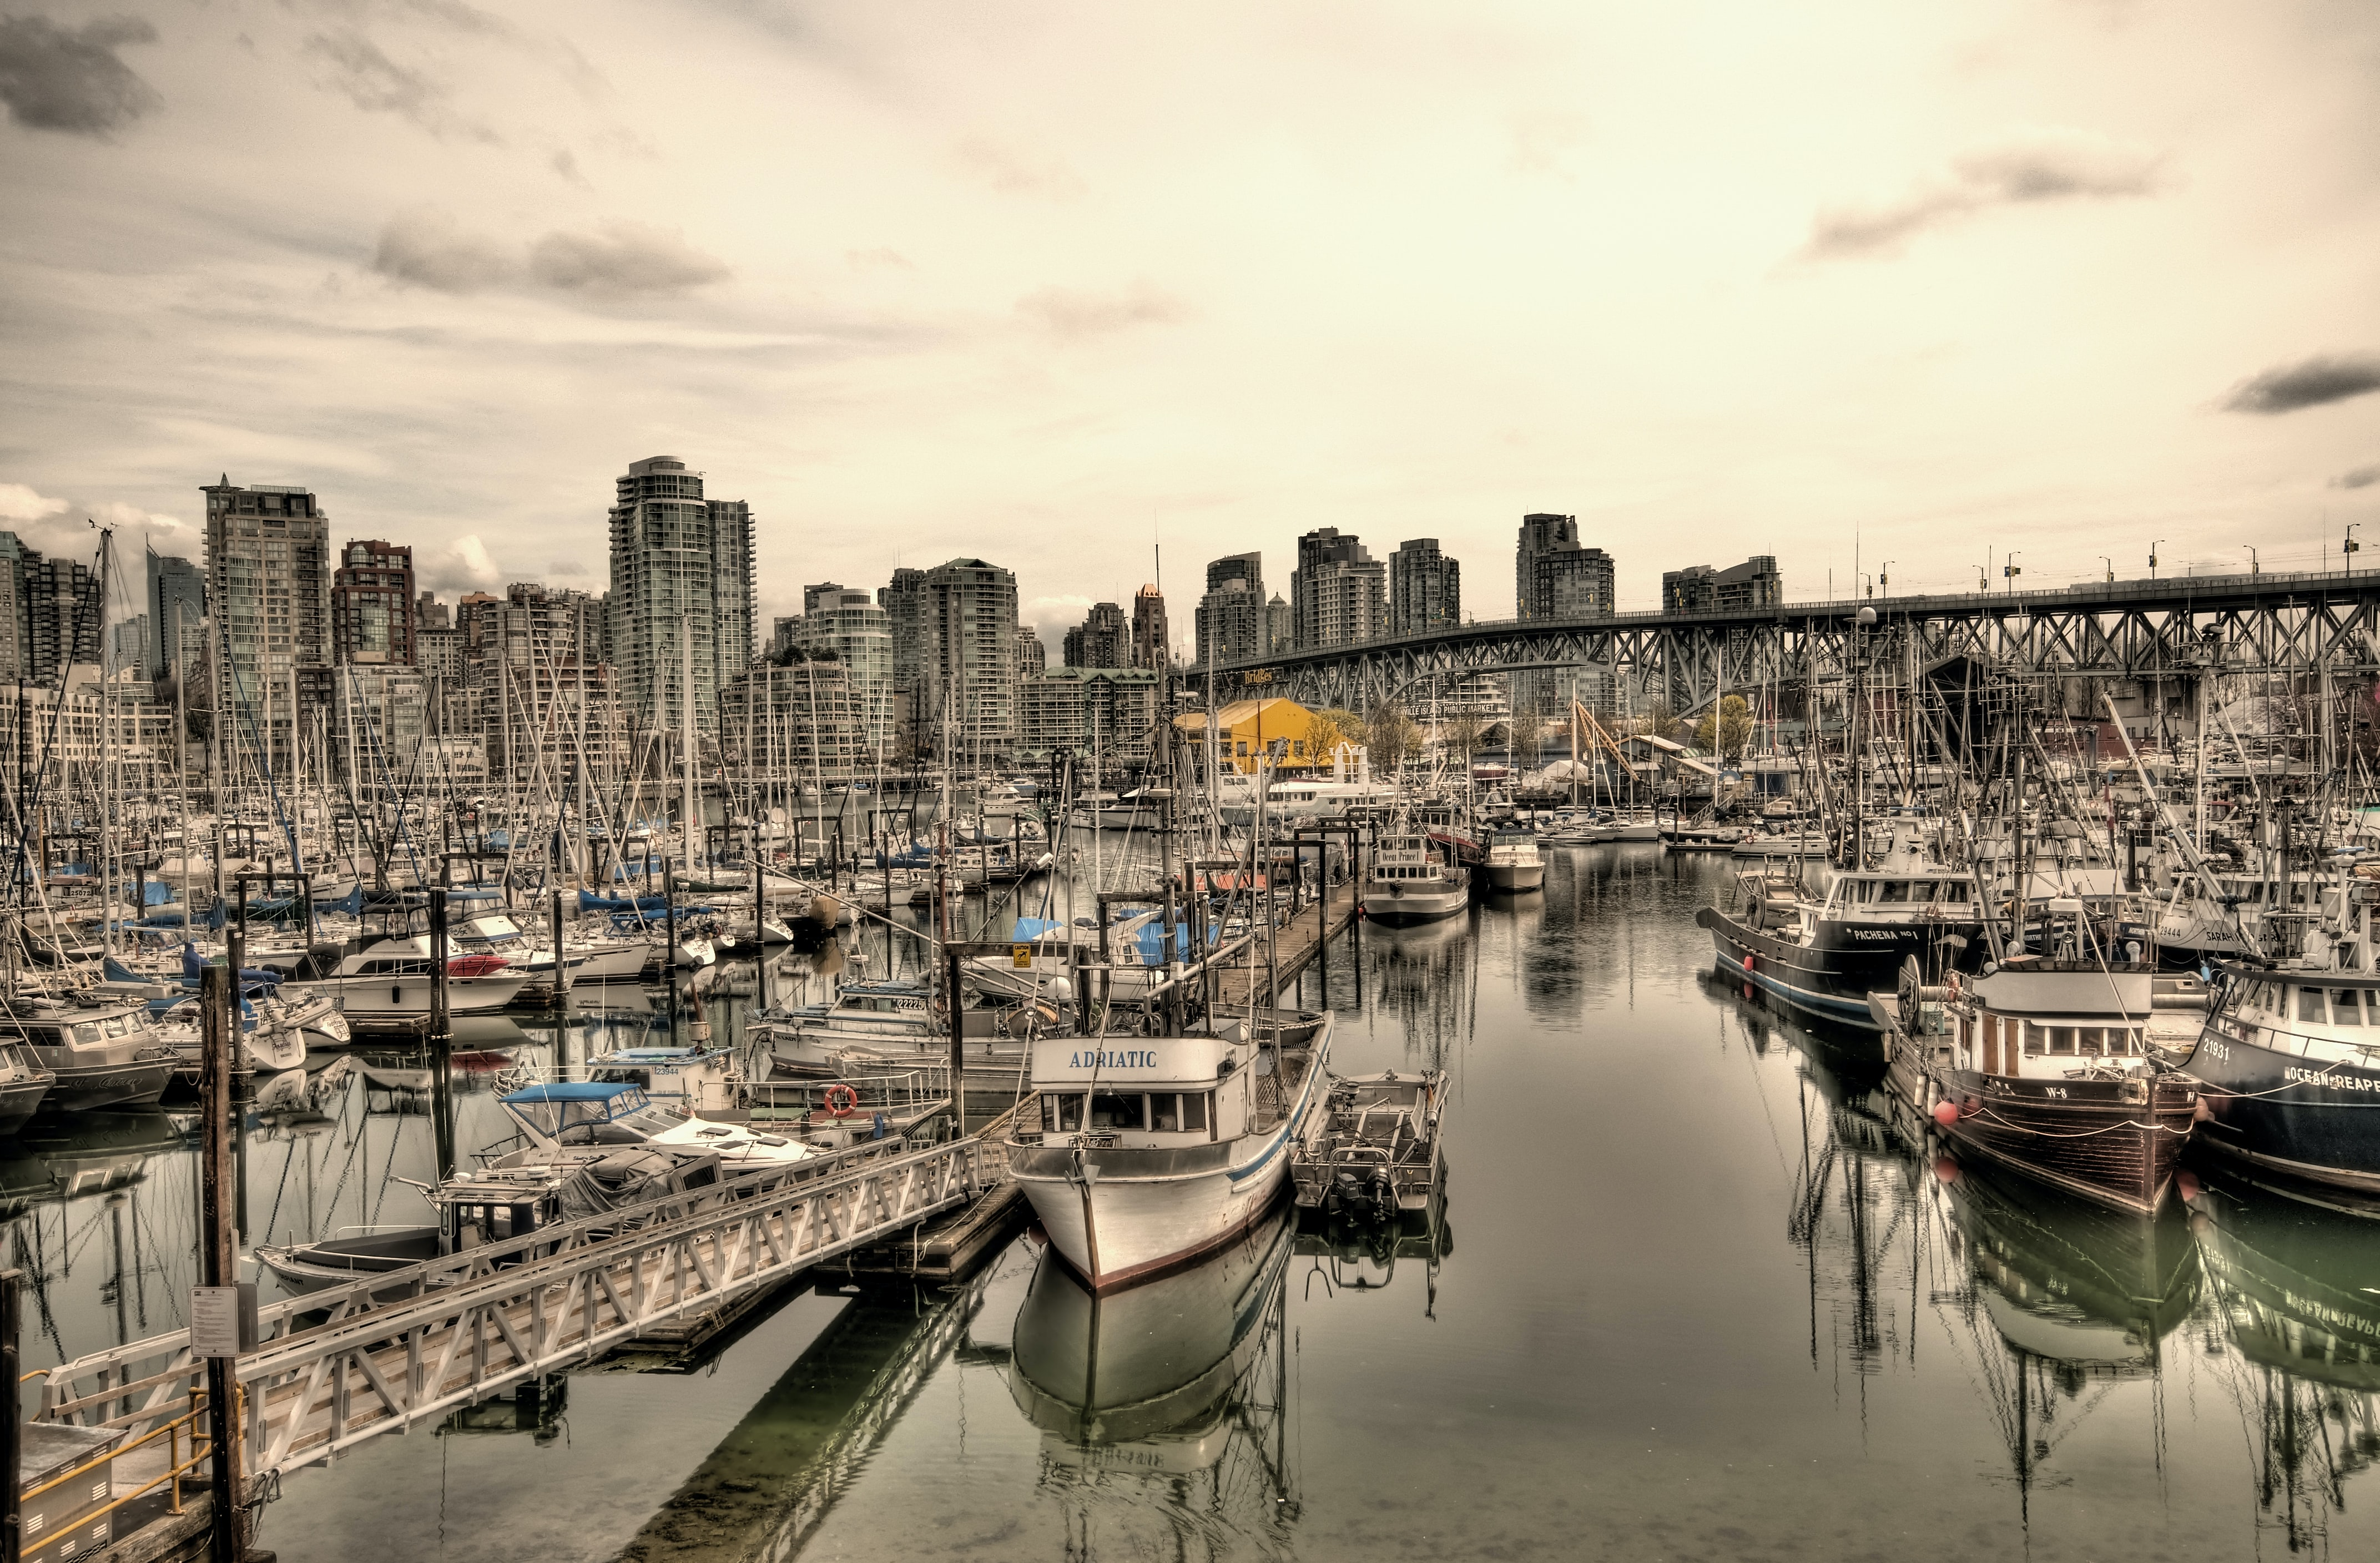 High contrast view of boats docked in a busy marina in Vancouver